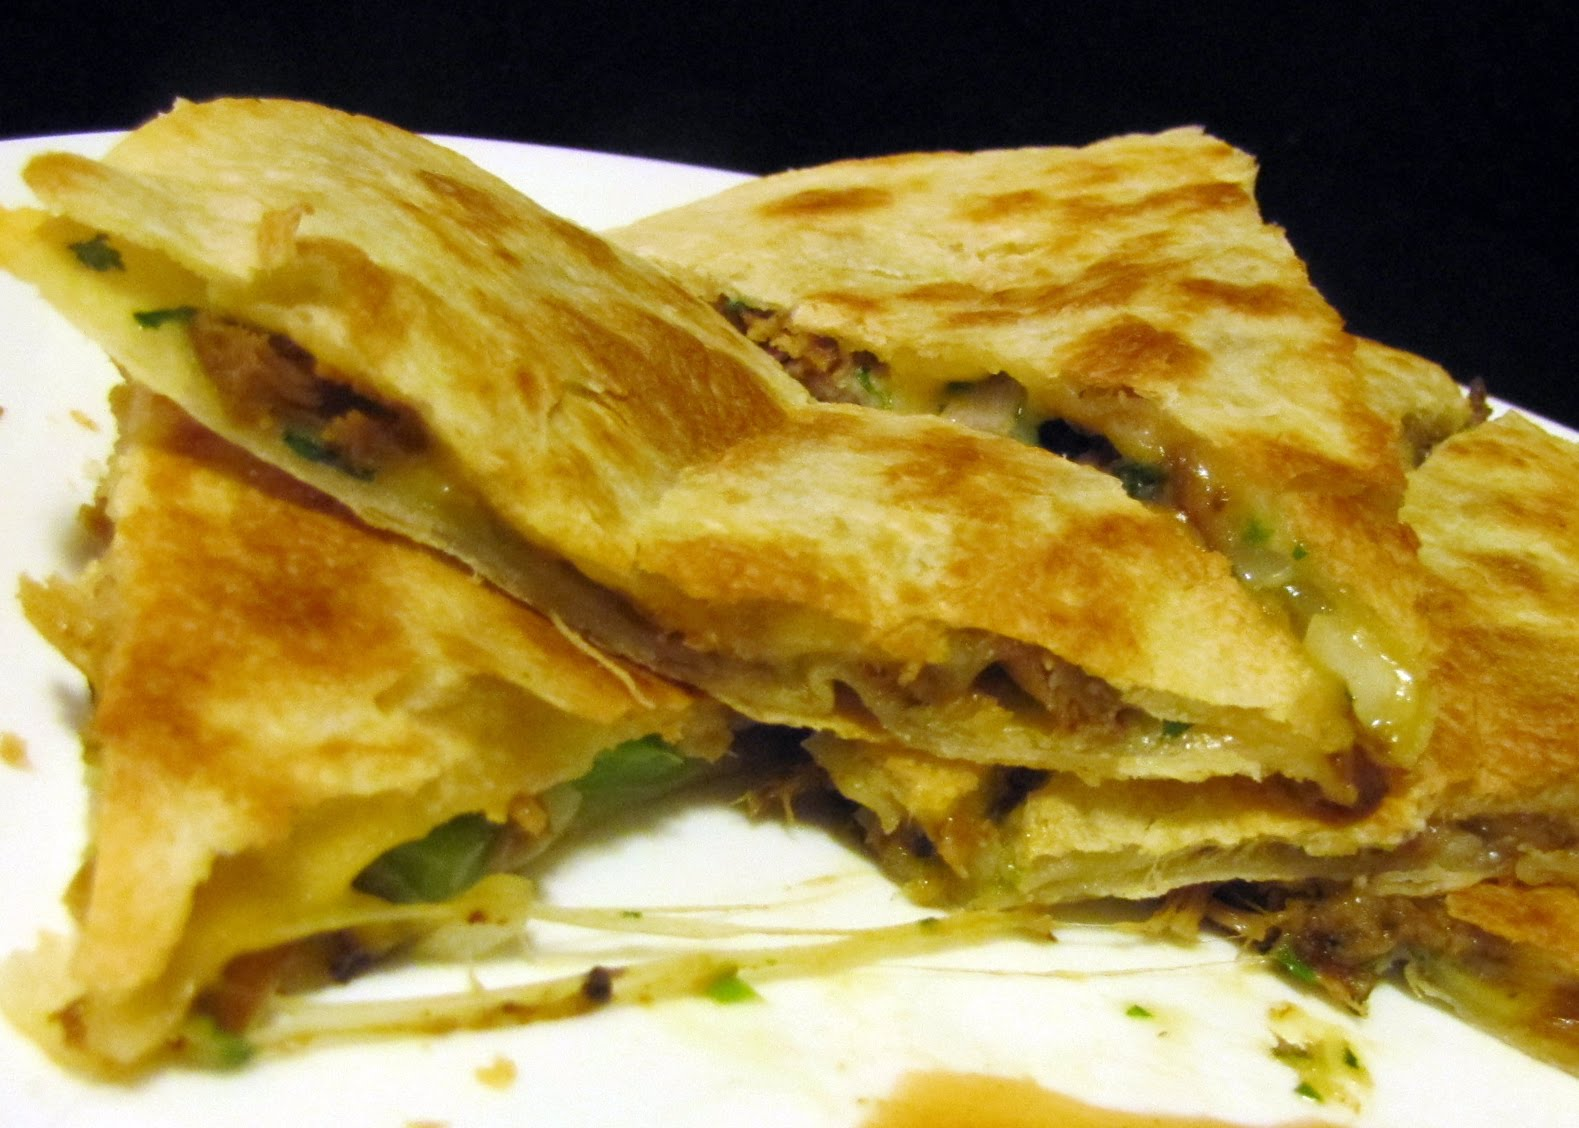 Smells Like Food in Here: Andy's Spicy Green Chili Pork Quesadilla